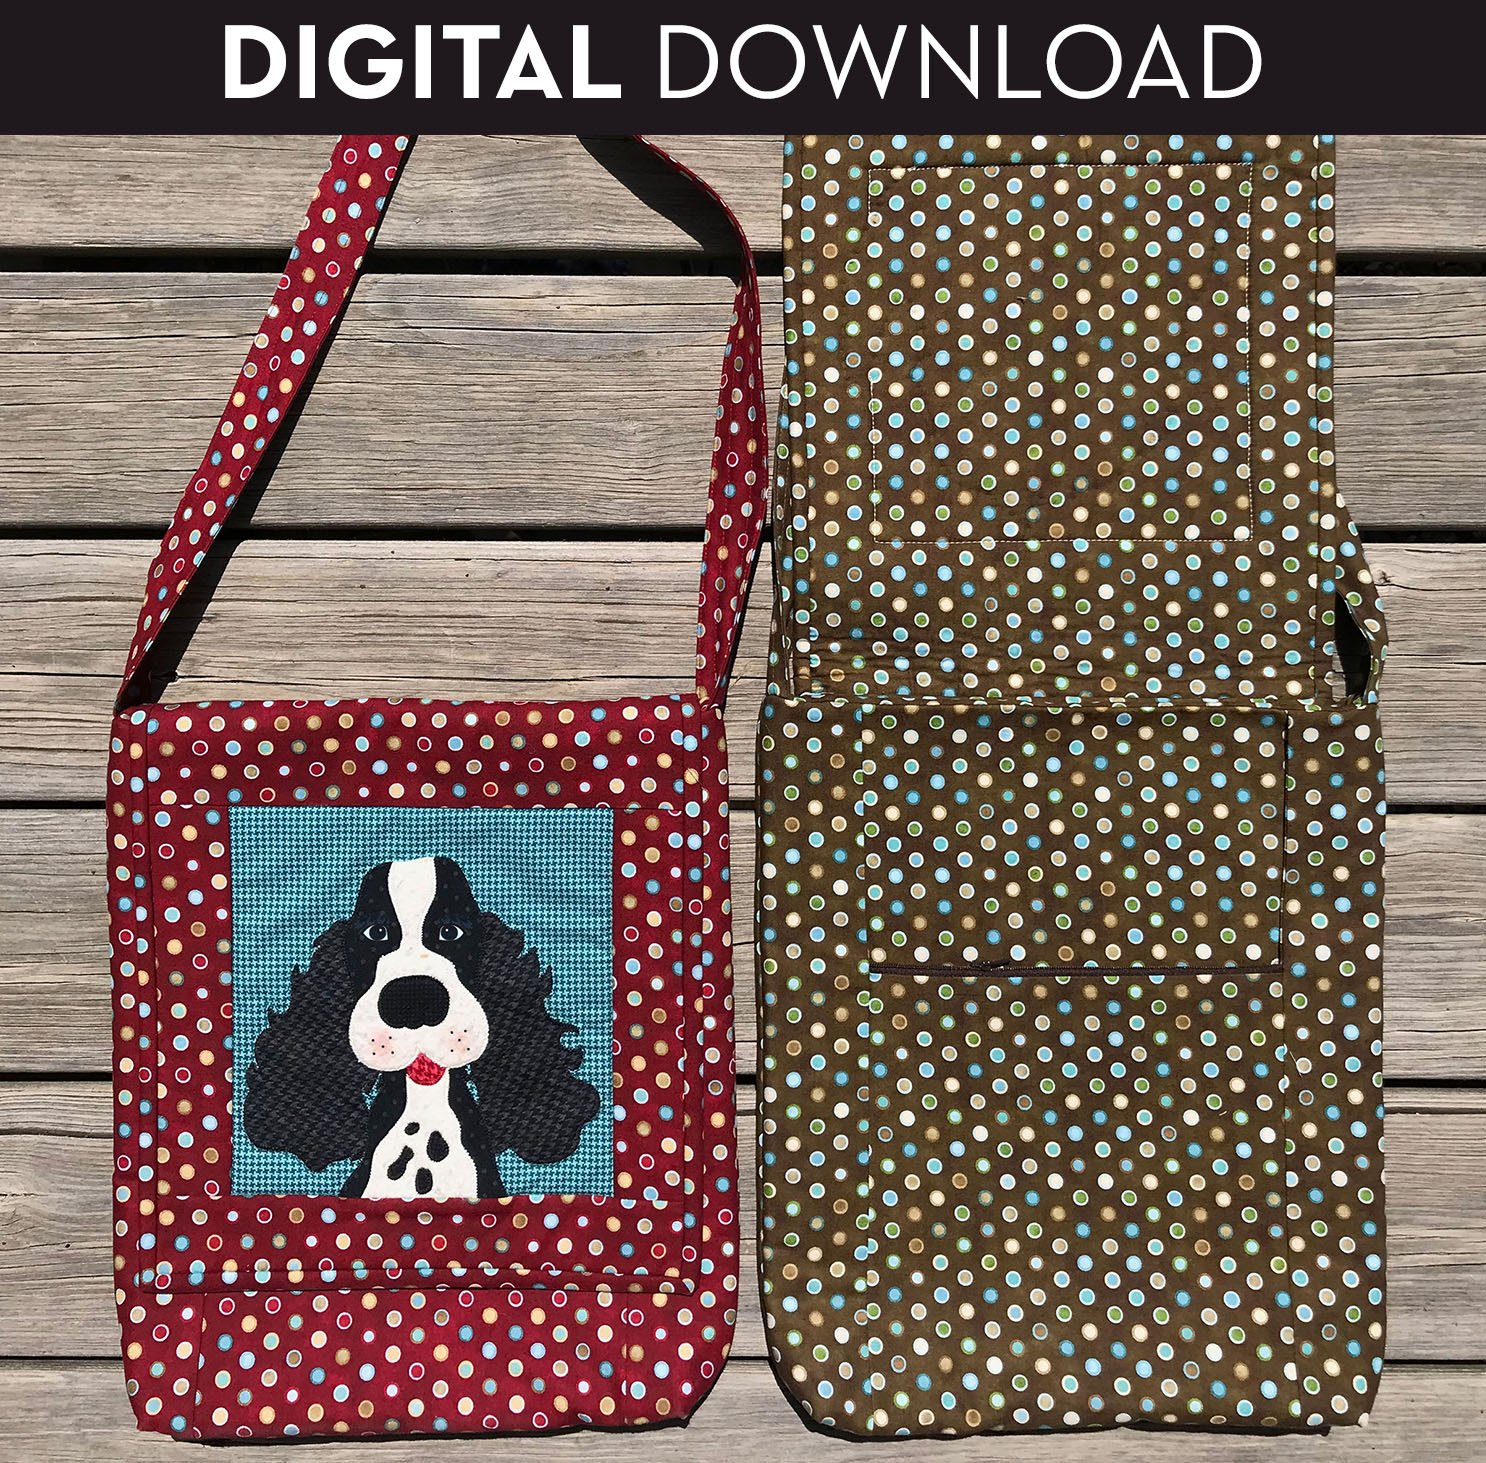 Doggy Bag - Download